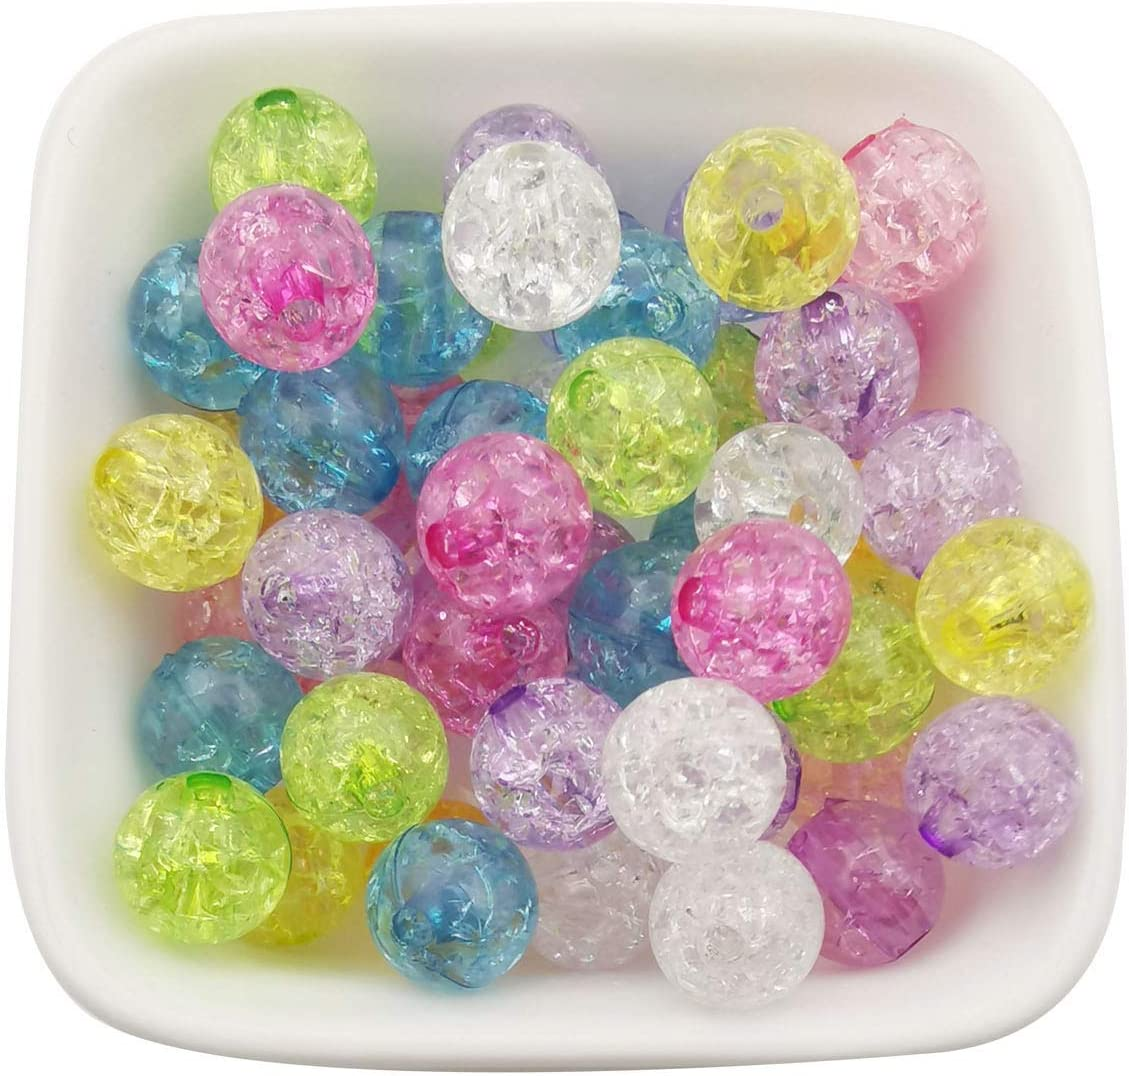 Youdiyla Bulk 1100pcs Floral Bead Cap Collection HM265 Mix Iron Metal Beads Caps for Necklace and Bracelet Eardrop Beads Jewelry Making